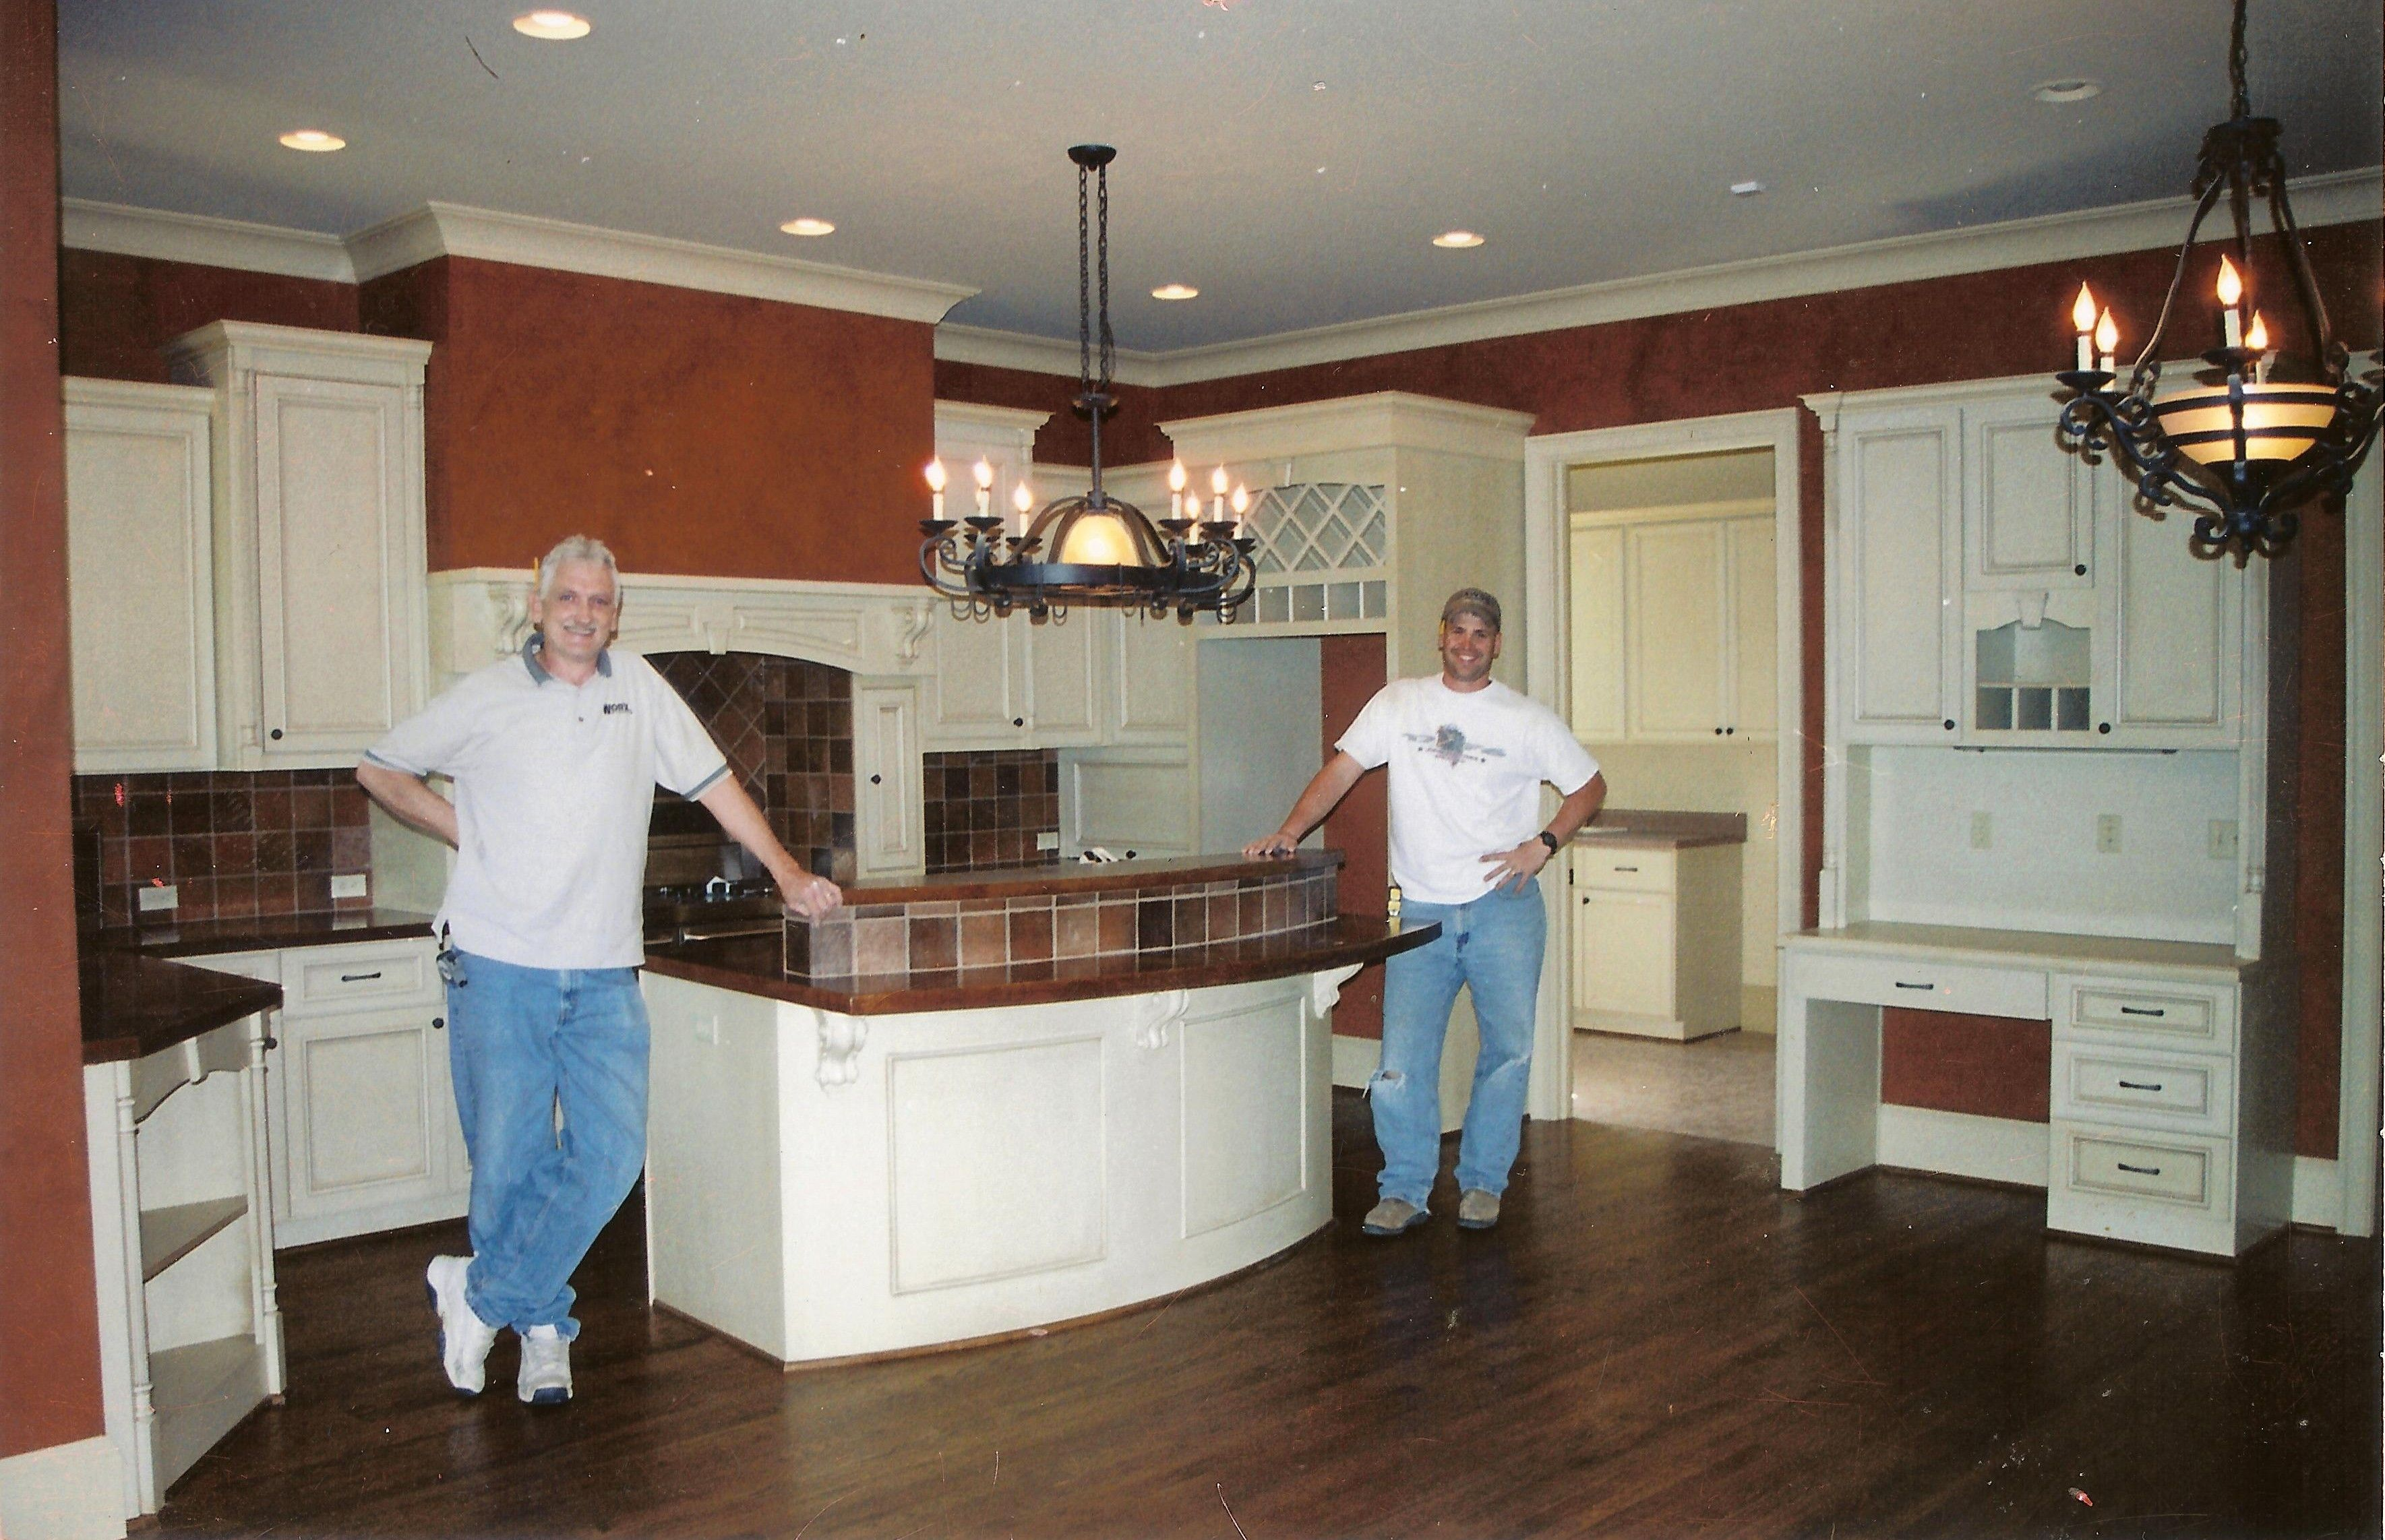 Harbor ridge kitchen done by woodworx for toulmin homes